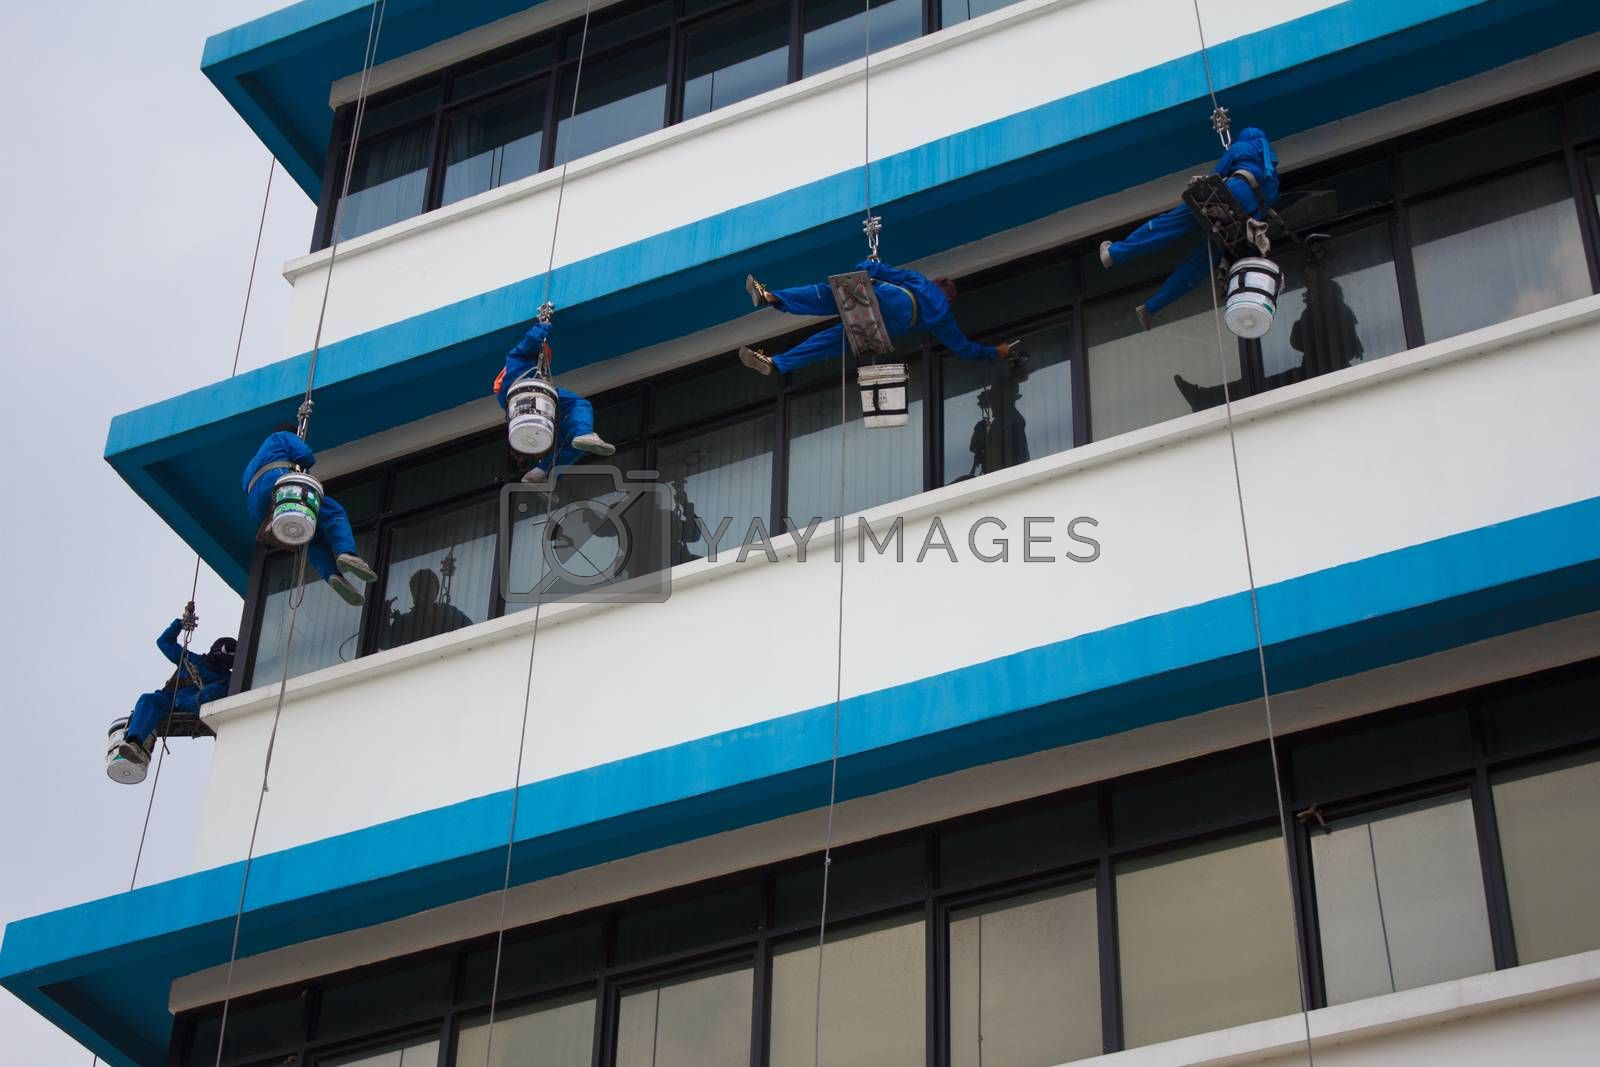 Royalty free image of Window washer by letoakin